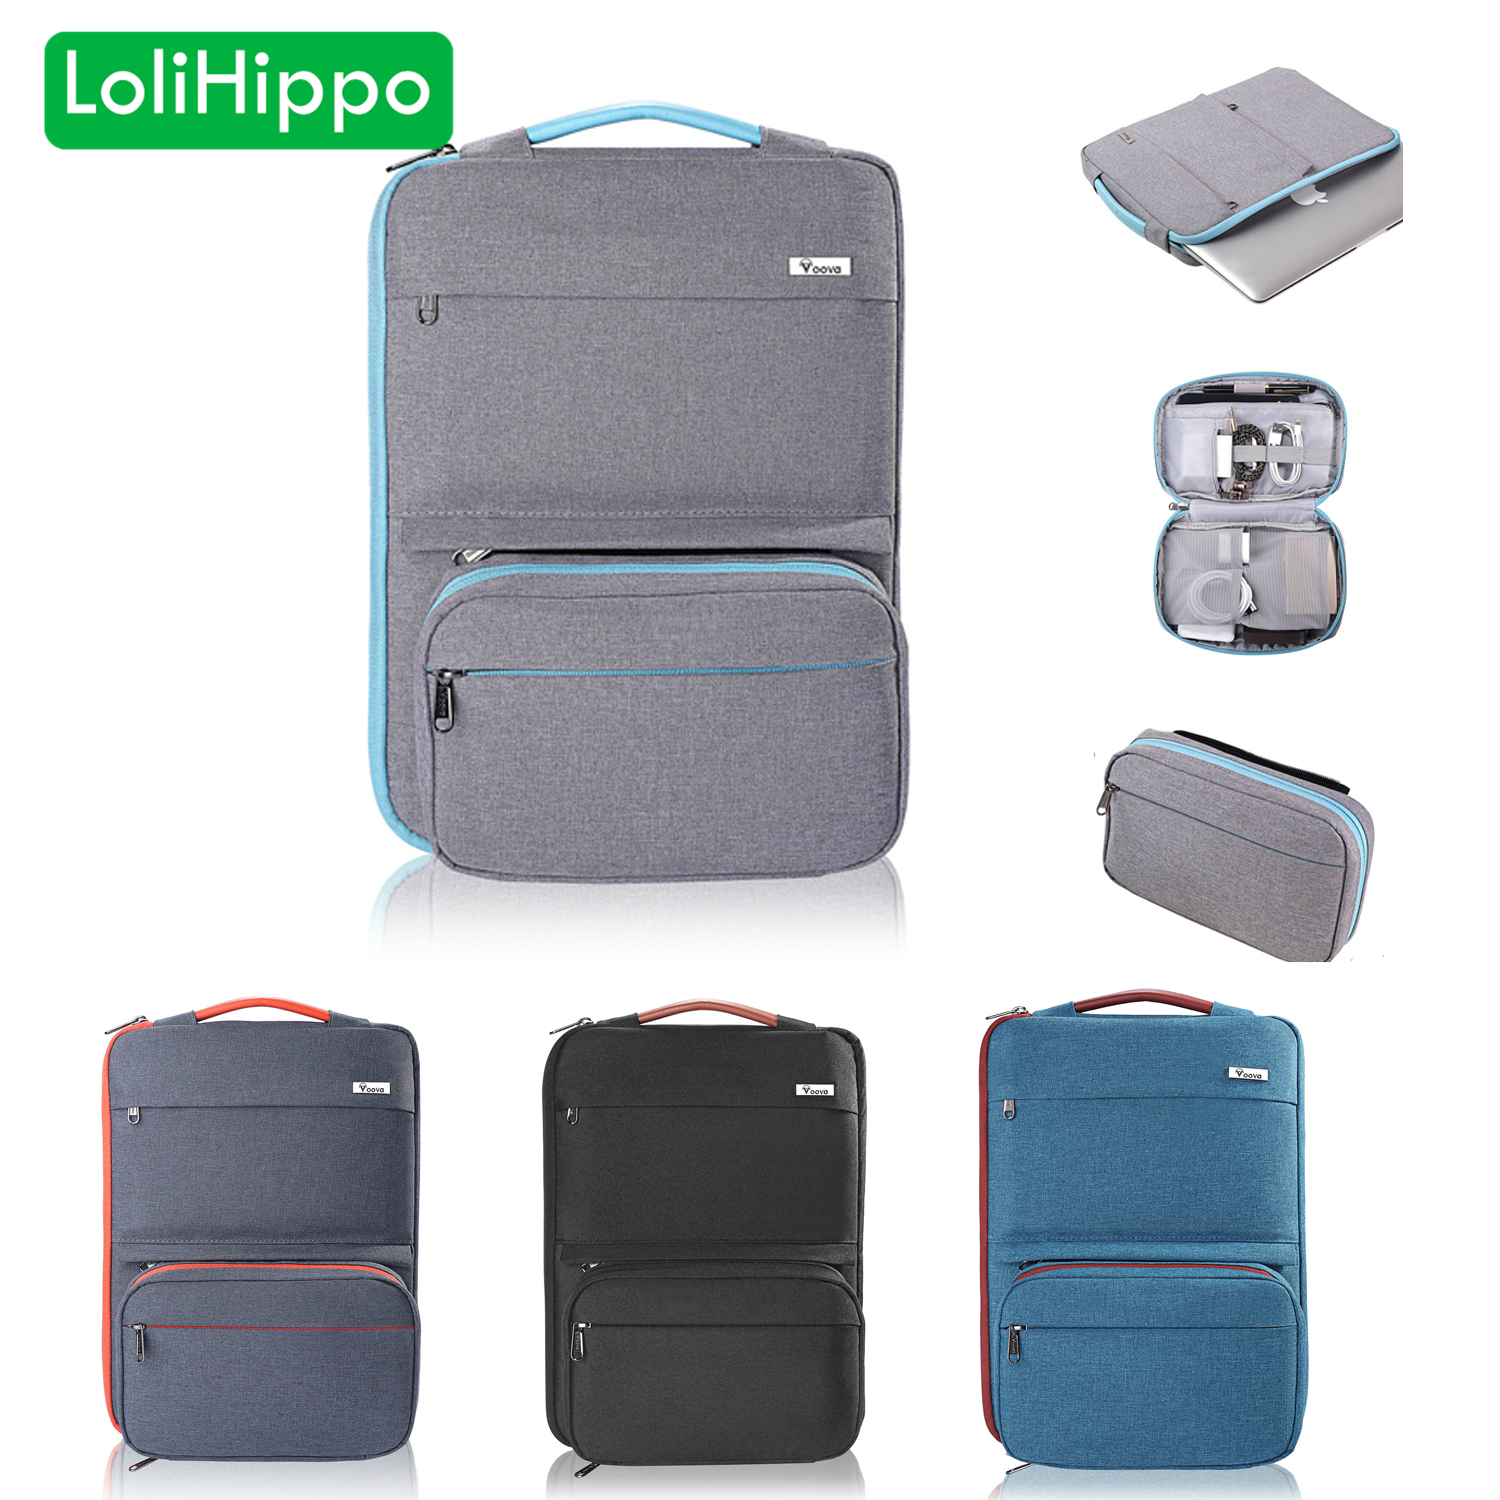 lolihippo-2in1-laptop-liner-sleeve-bag-inner-case-for-apple-macbook-air-pro-13-3-15-4-inch-portable-package-accessories-bag-set